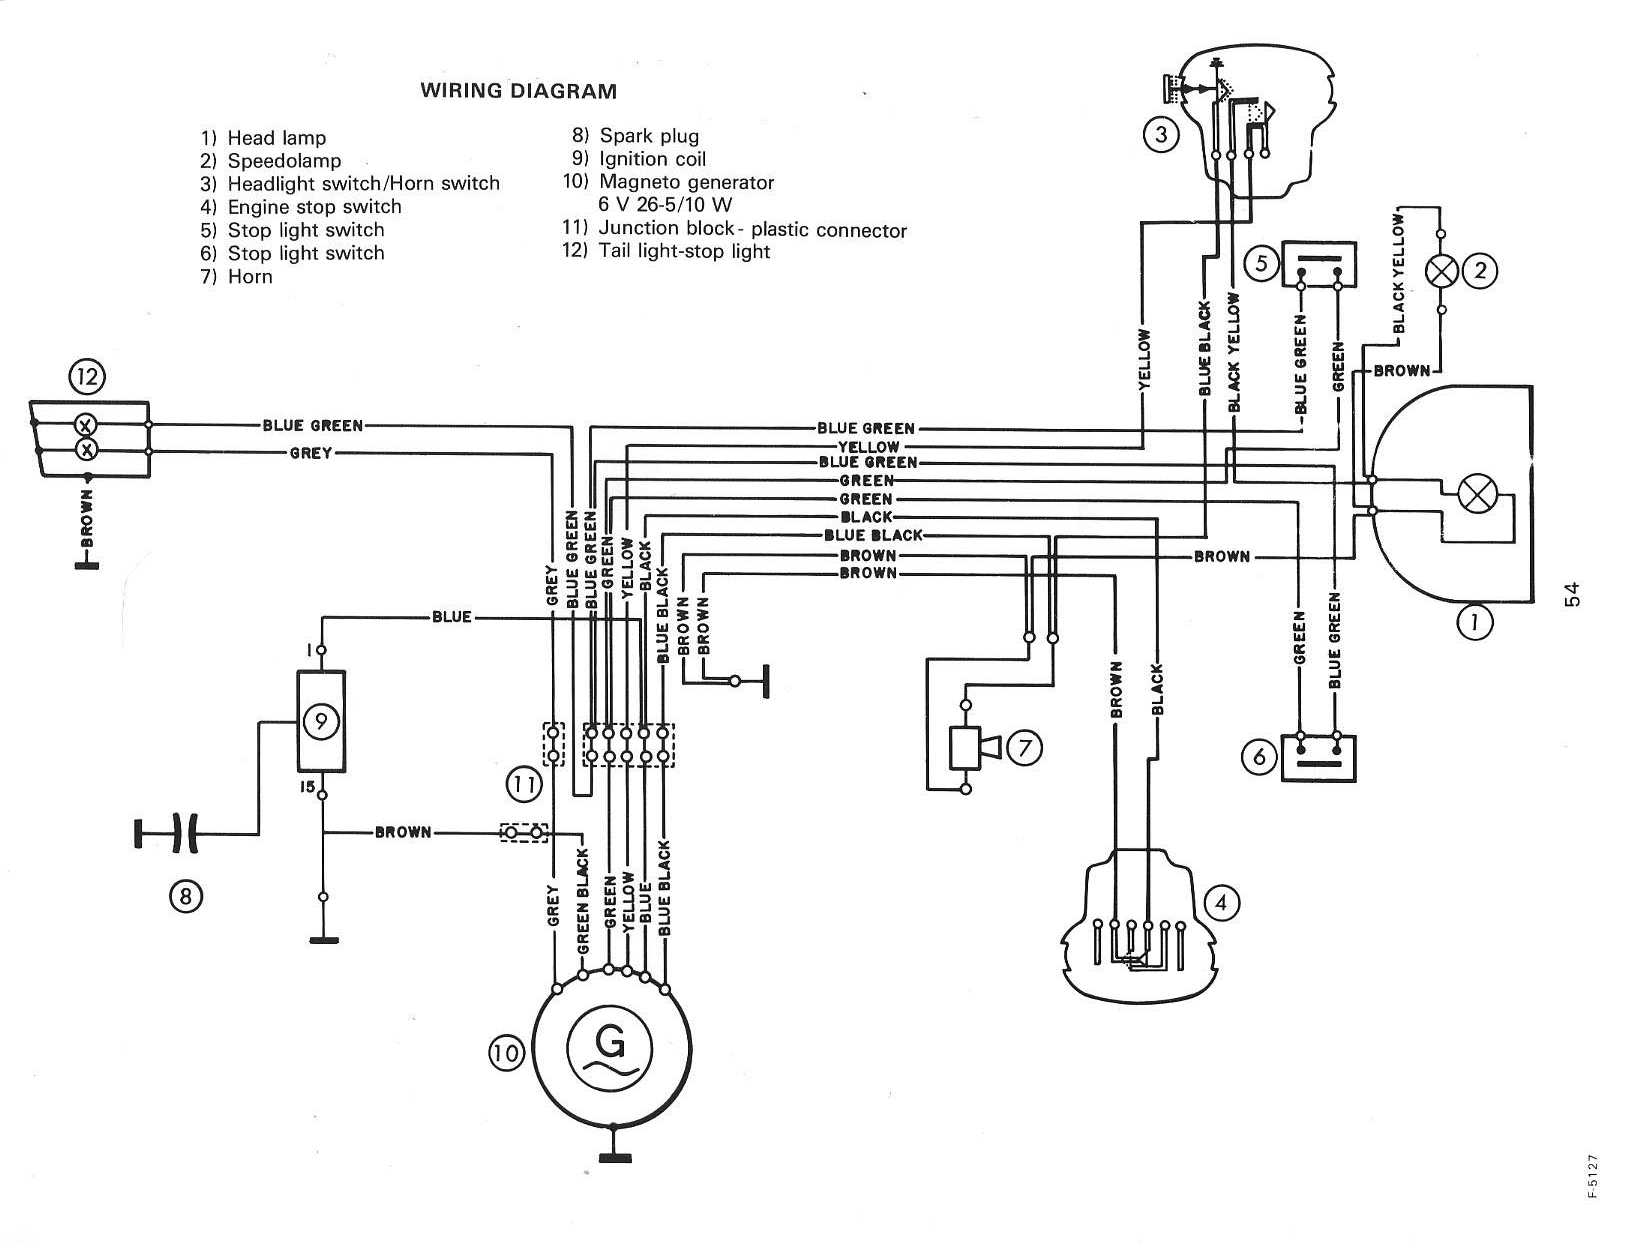 wiring diagram for moped